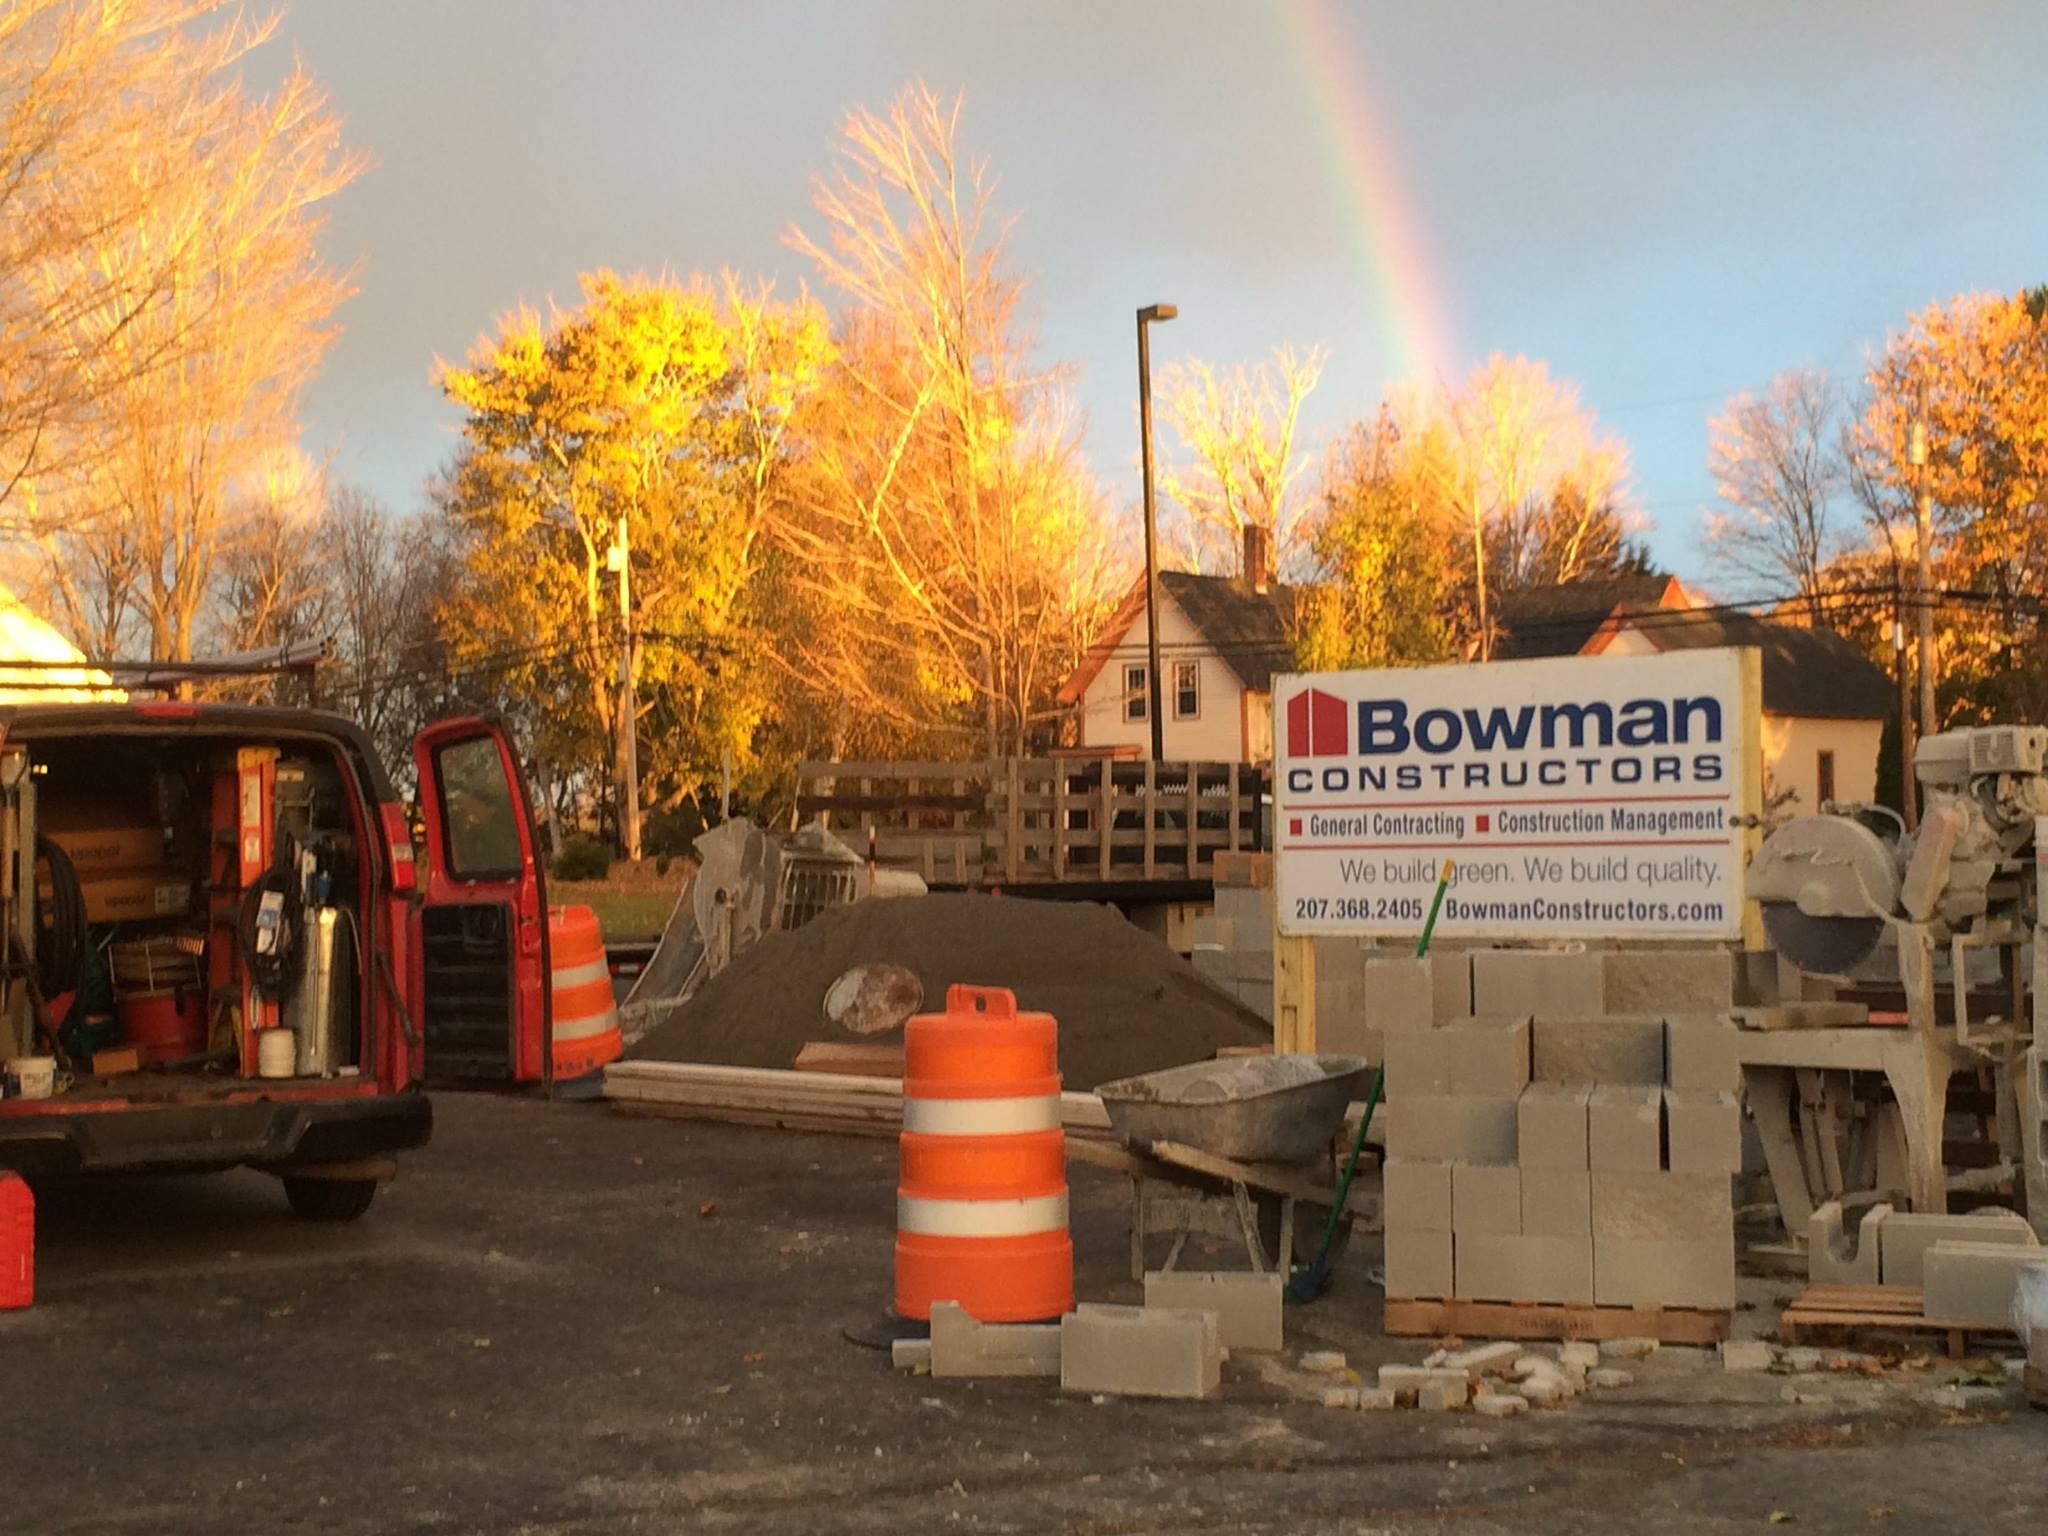 photo of rainbow over bowman constructors sign